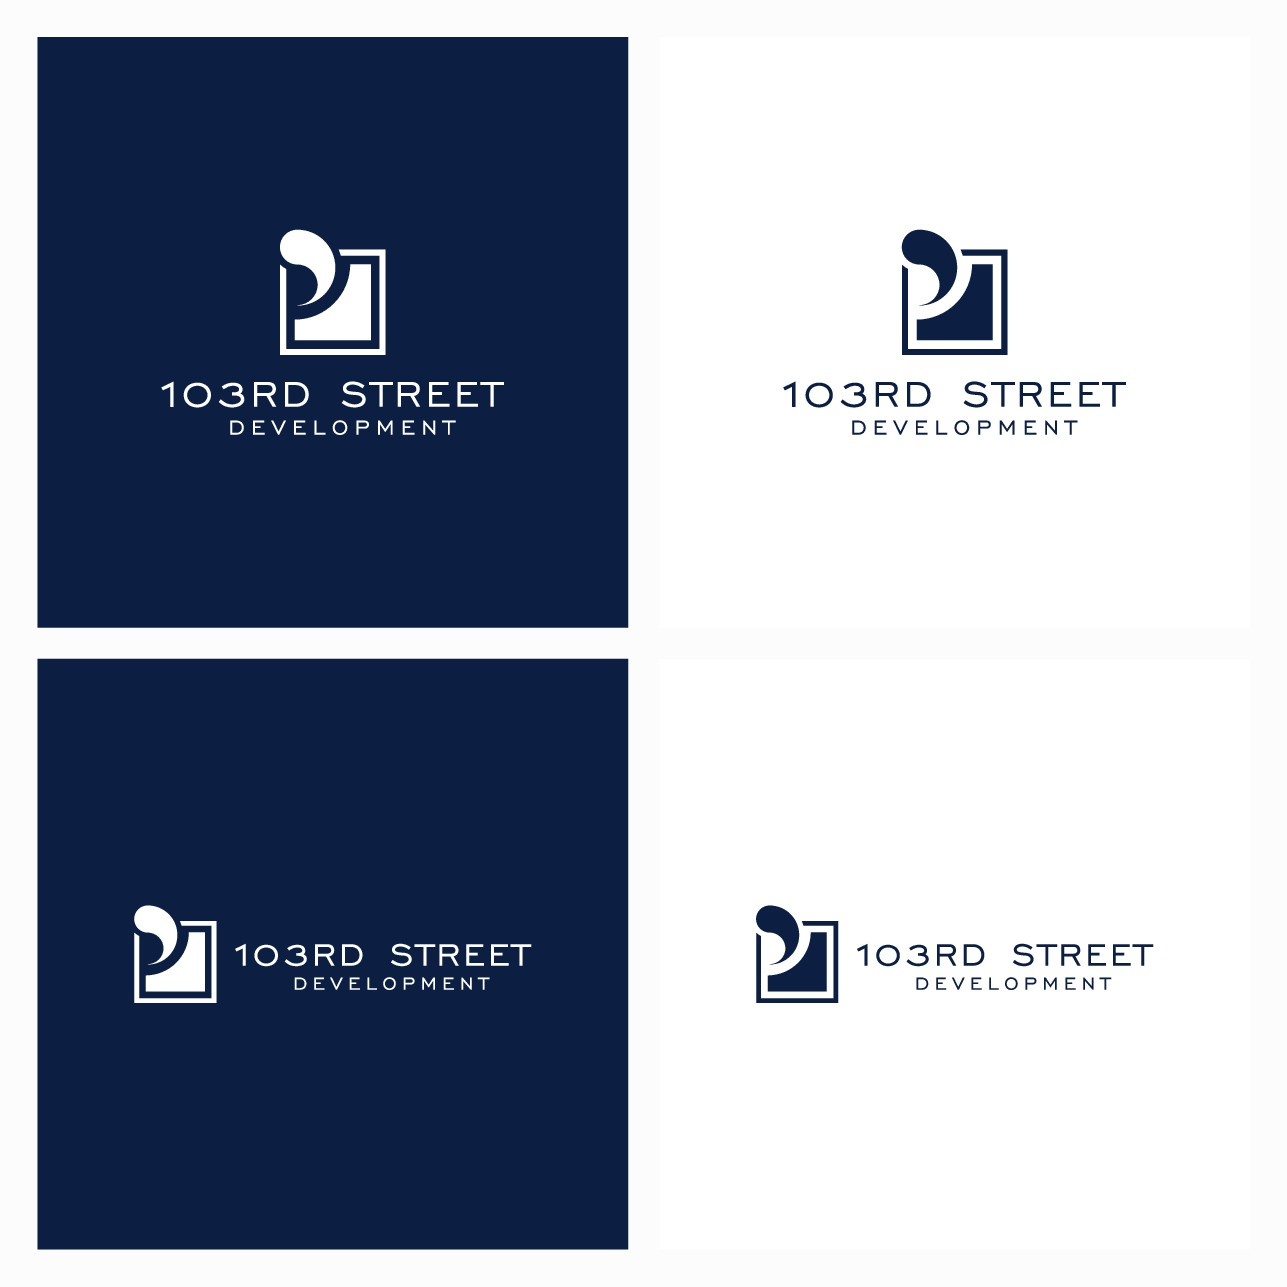 Need a simple, clean and strong Real Estate Developer Logo-Austin, TX